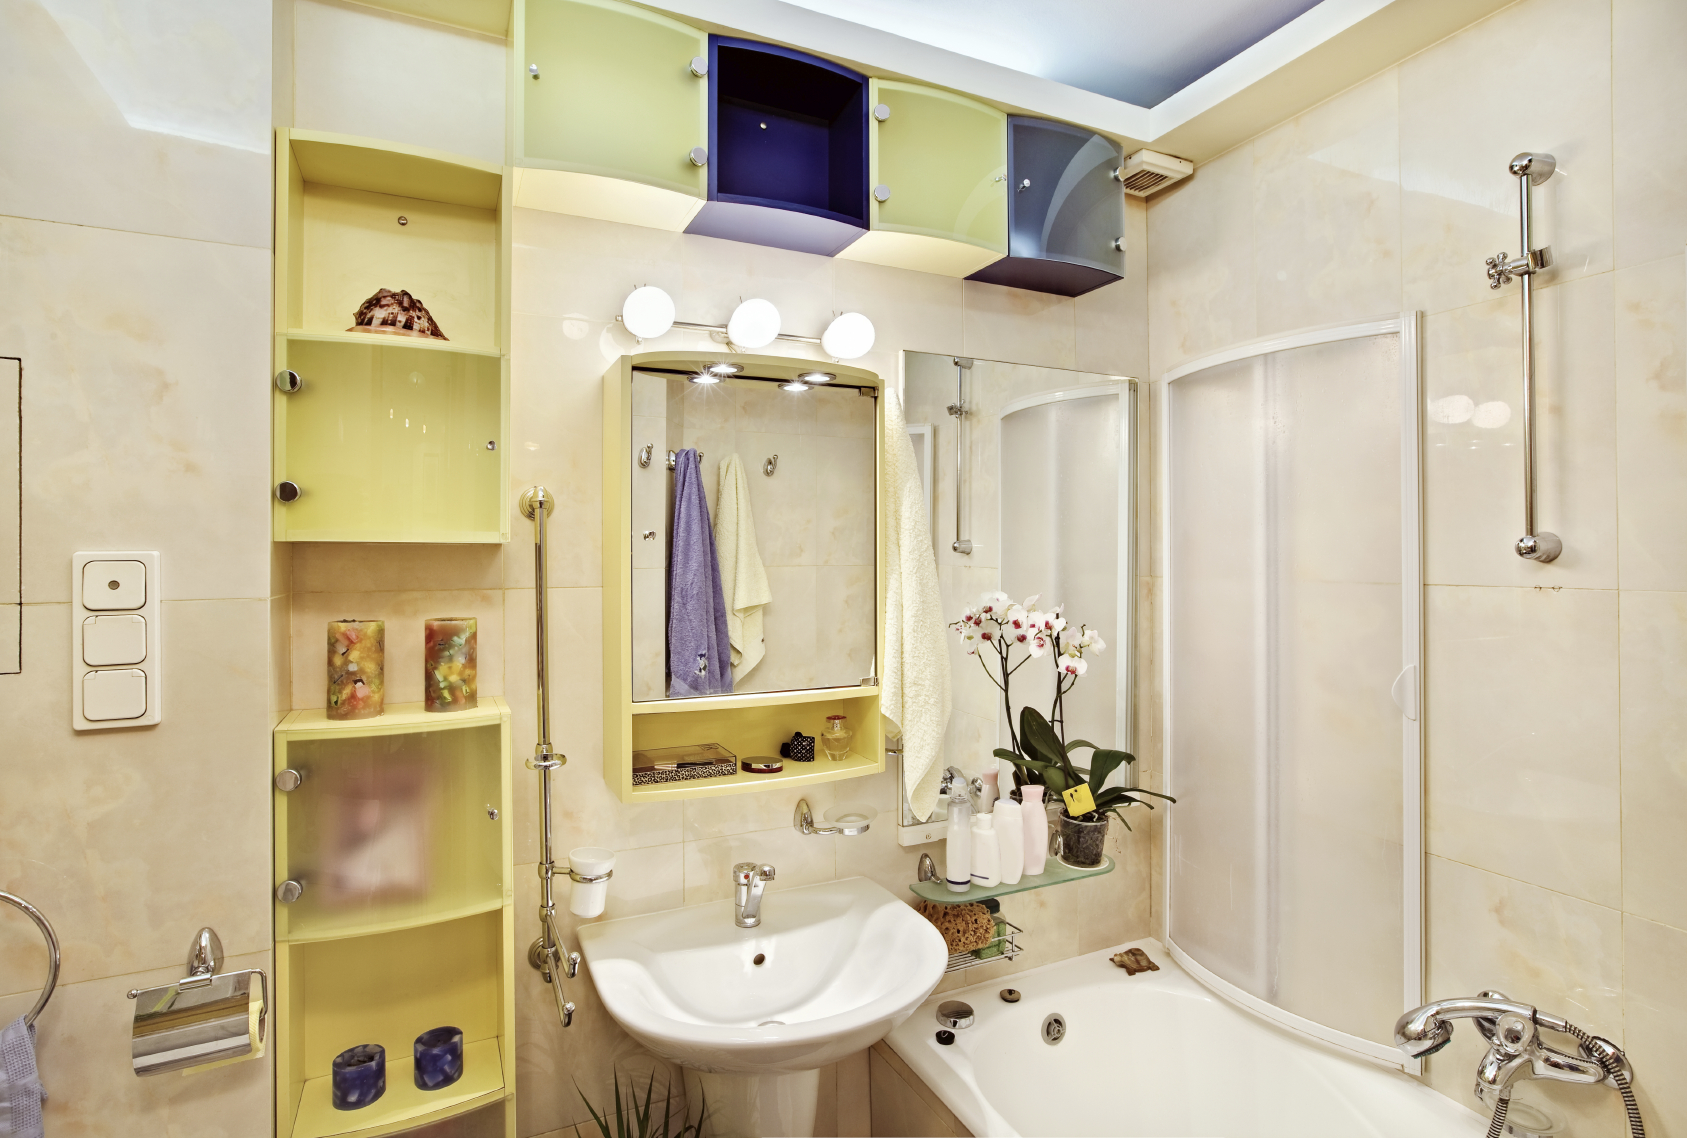 Four Reasons Why You Should Buy a New Bathroom